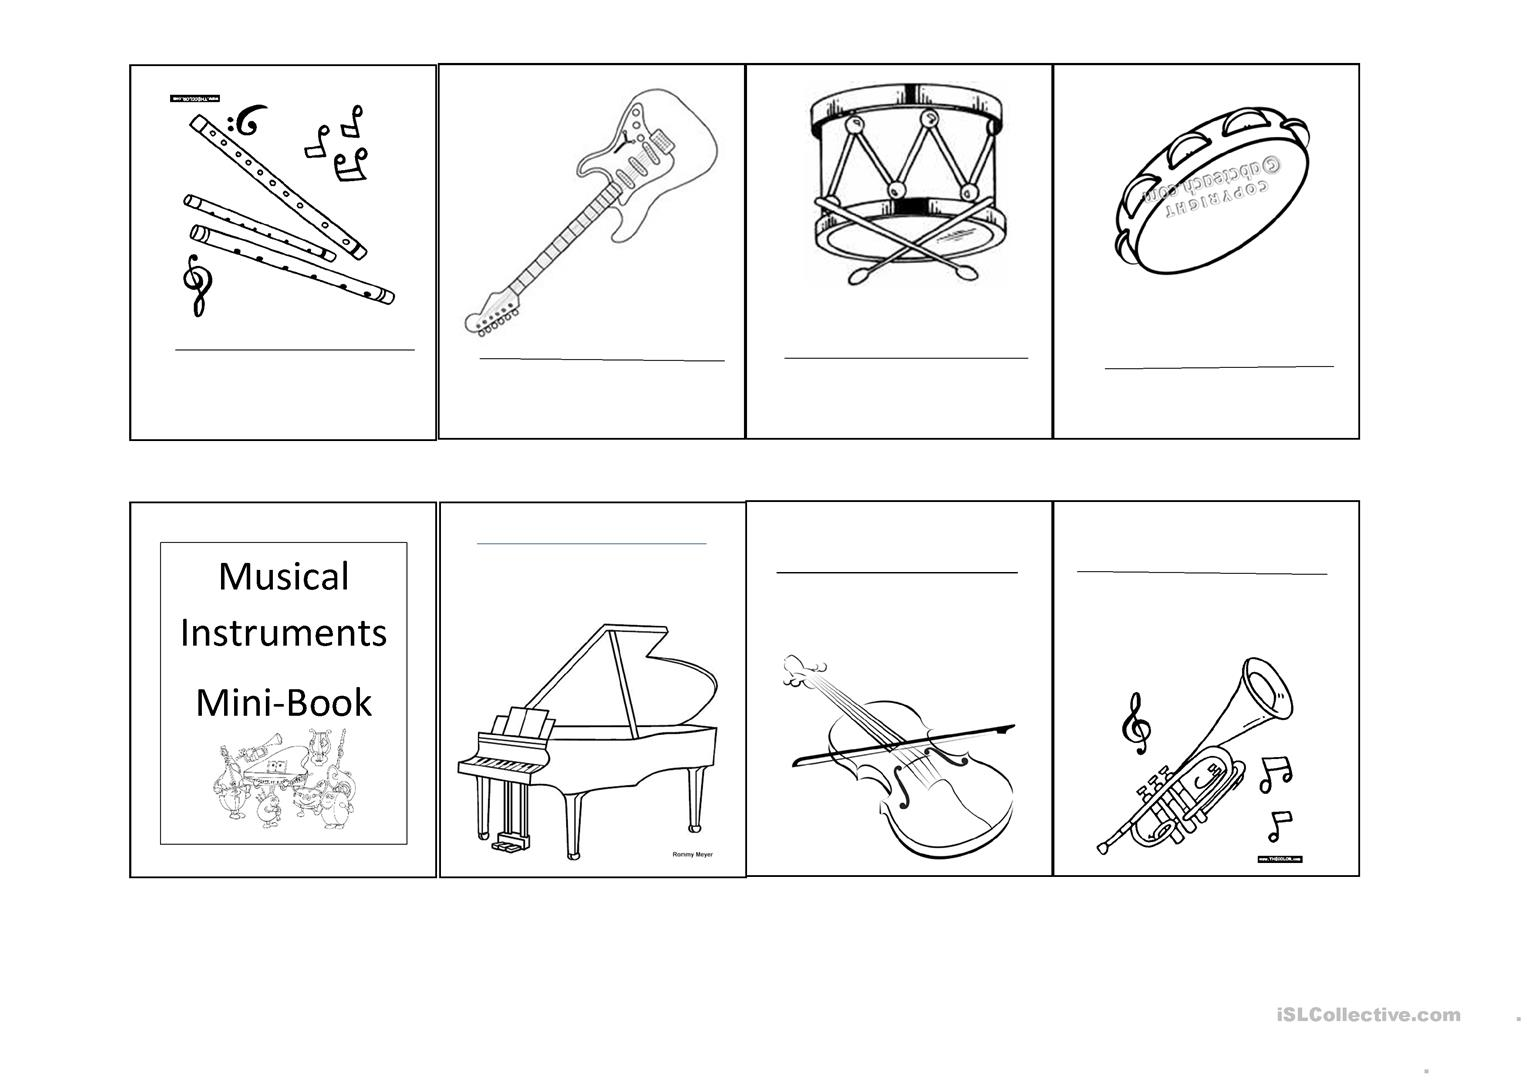 Musical Instruments Worksheets Printable